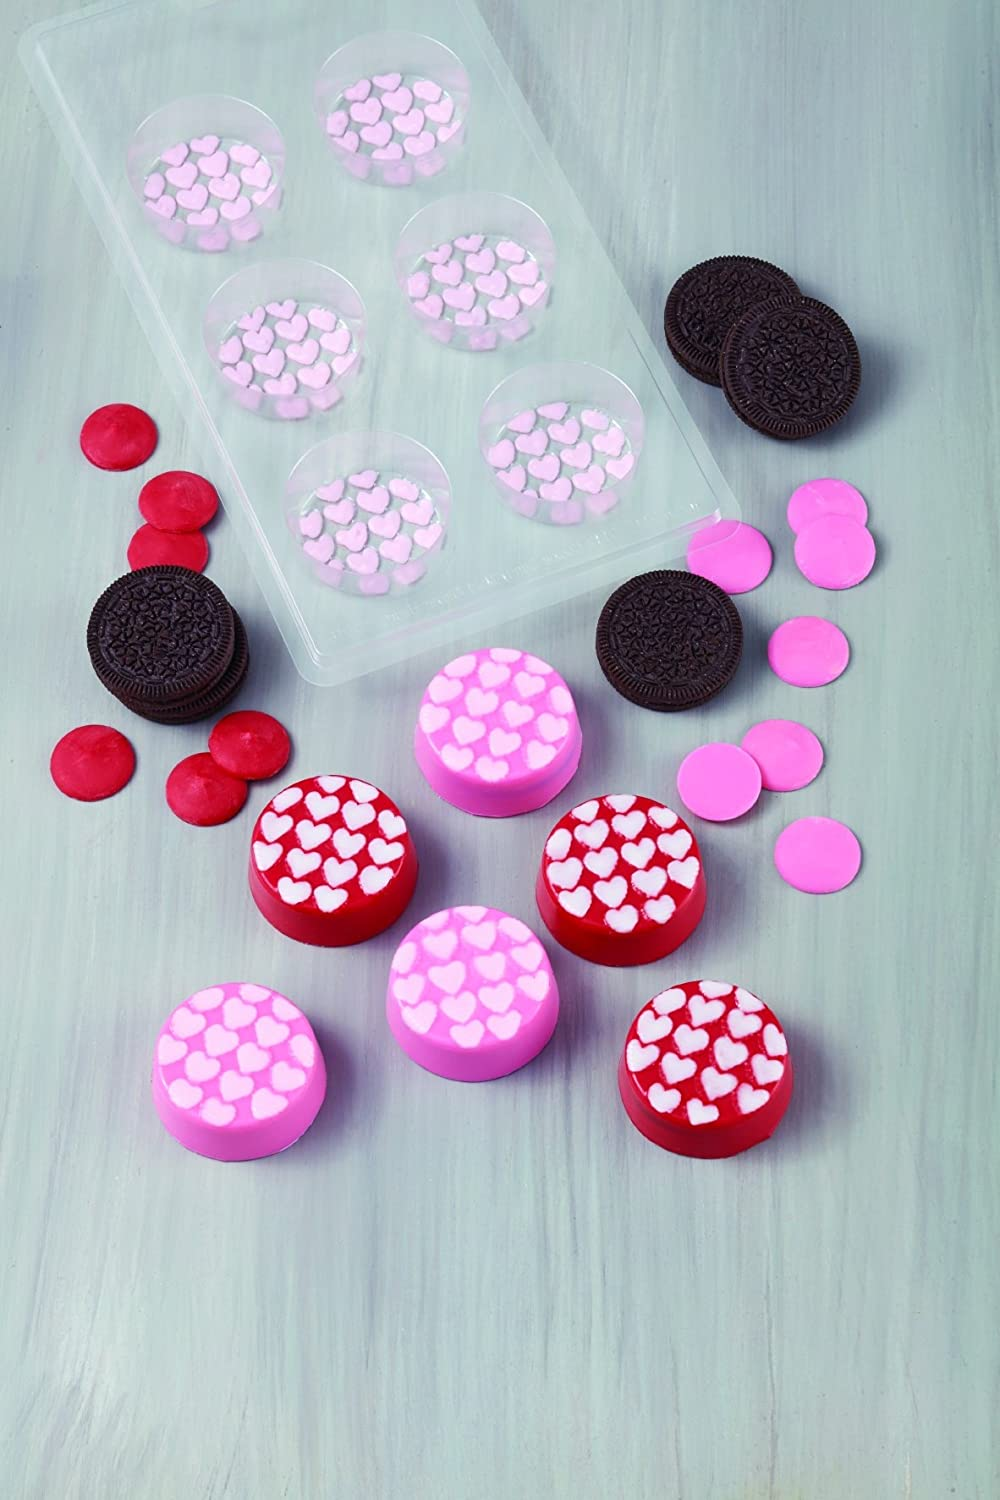 Amazon.com: Wilton 2115-0142 Mini Hearts Cookie Candy Mold: Kitchen & Dining